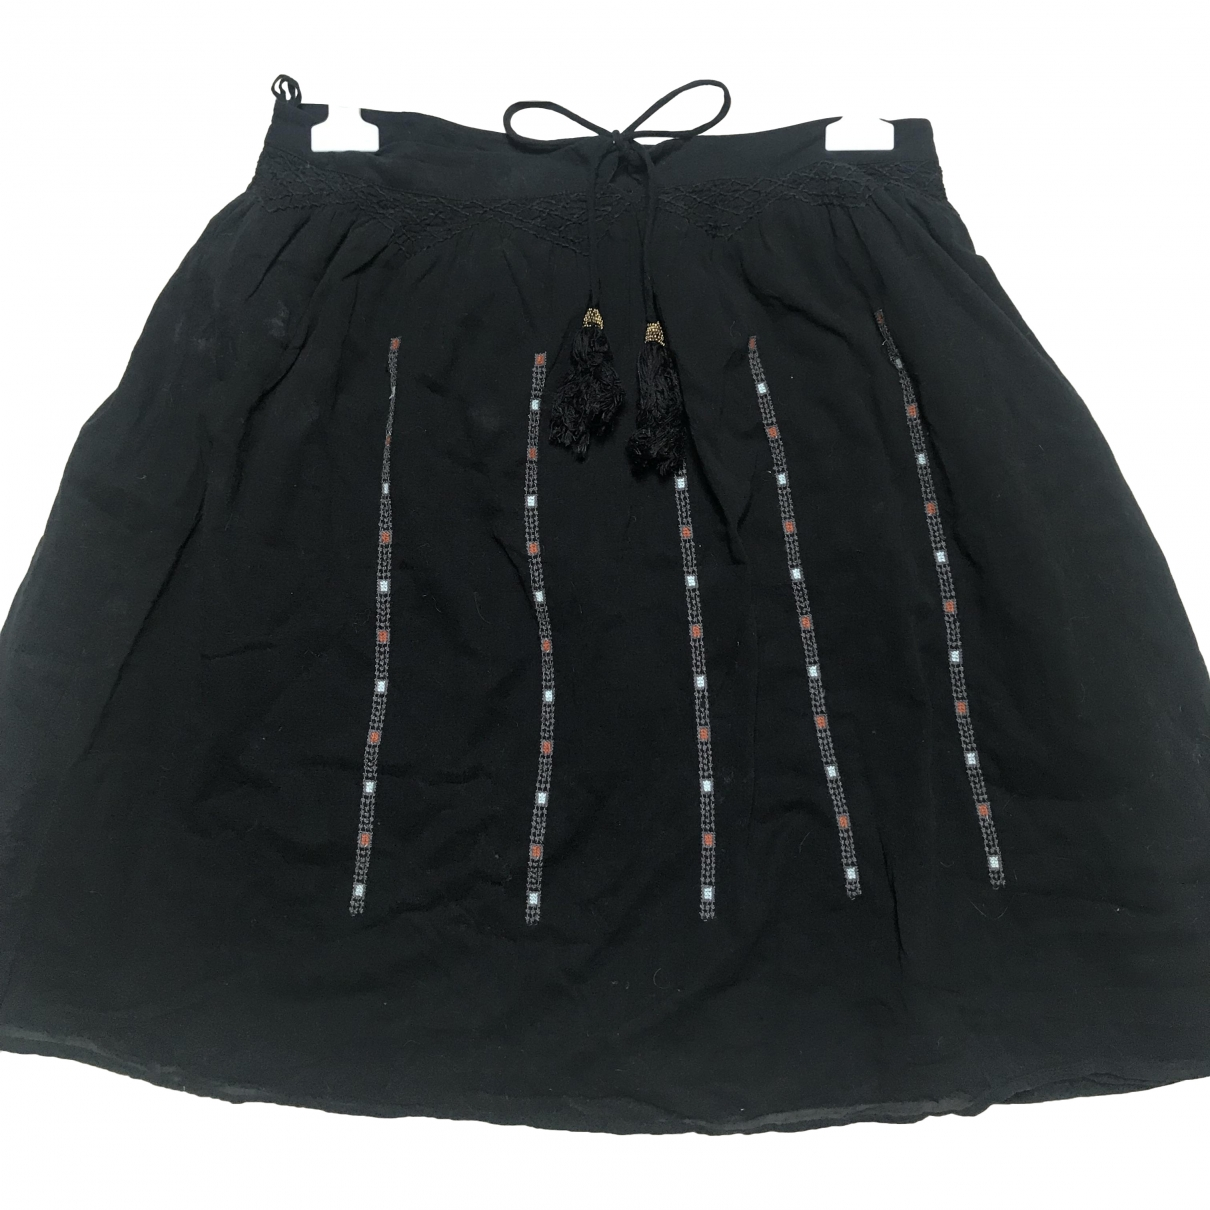 Iro \N Black Cotton skirt for Women 40 FR